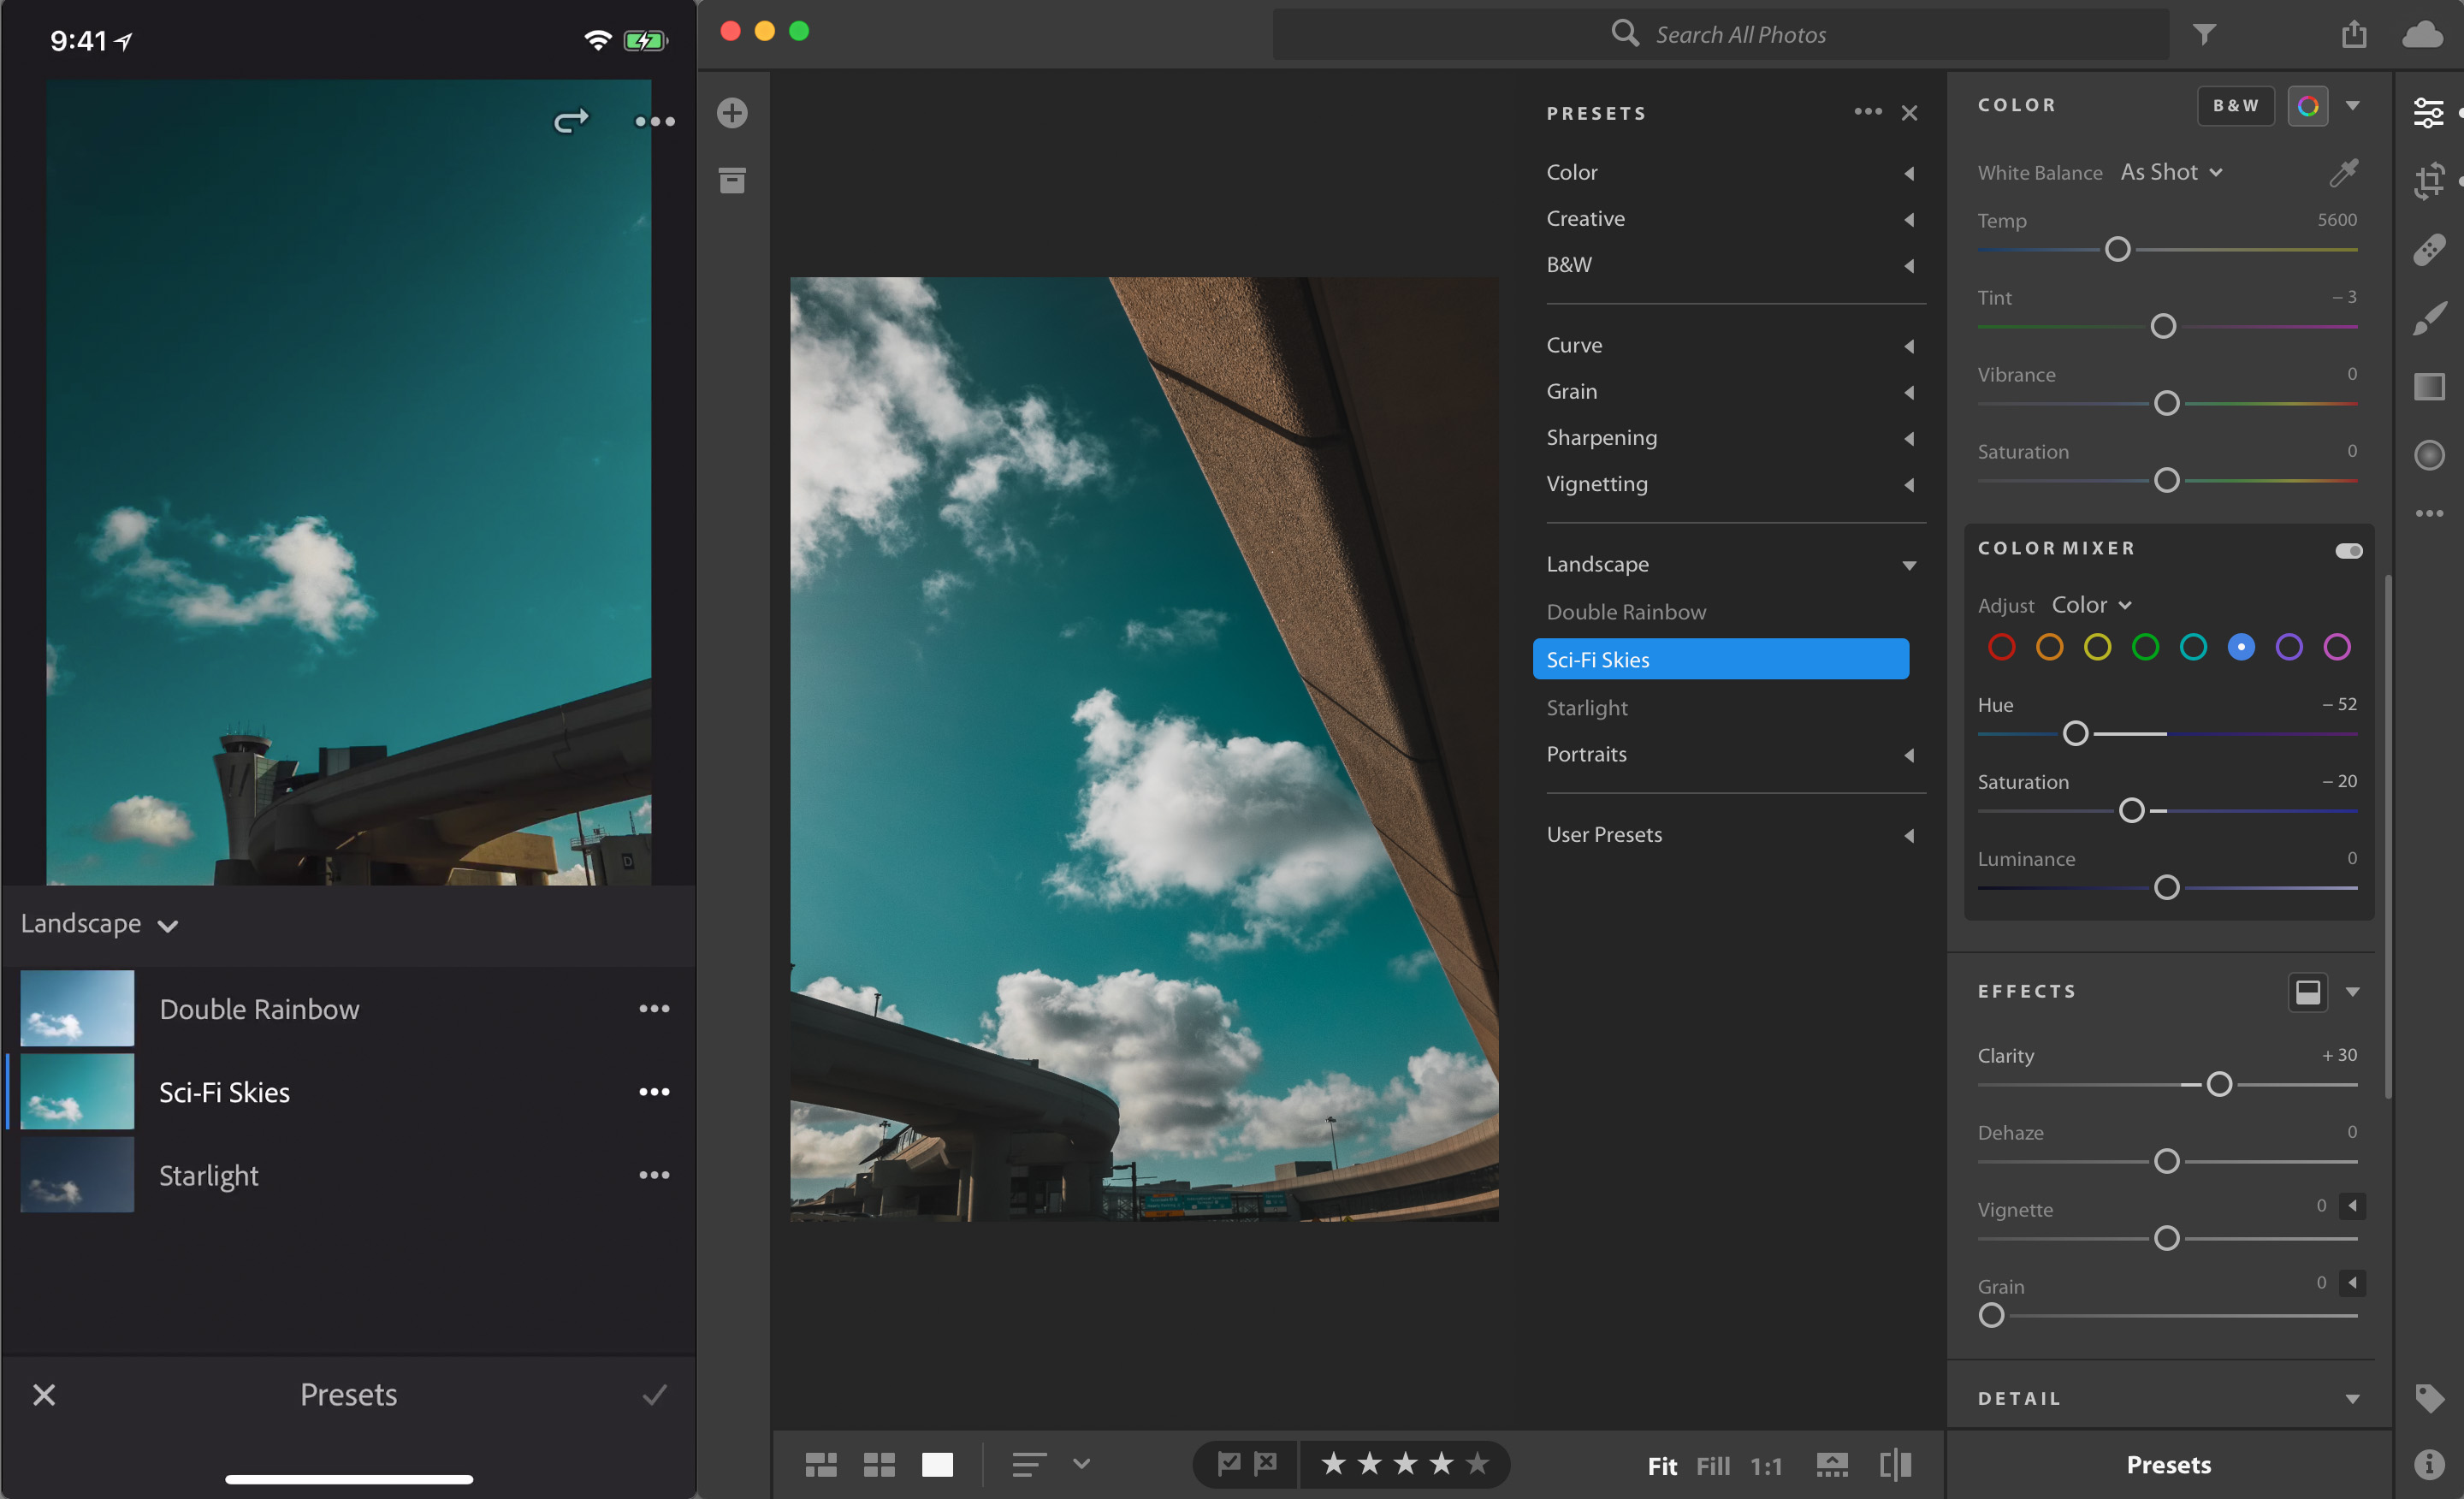 Adobe Lightroom Is All New | The Good, The Bad, The Perplexing